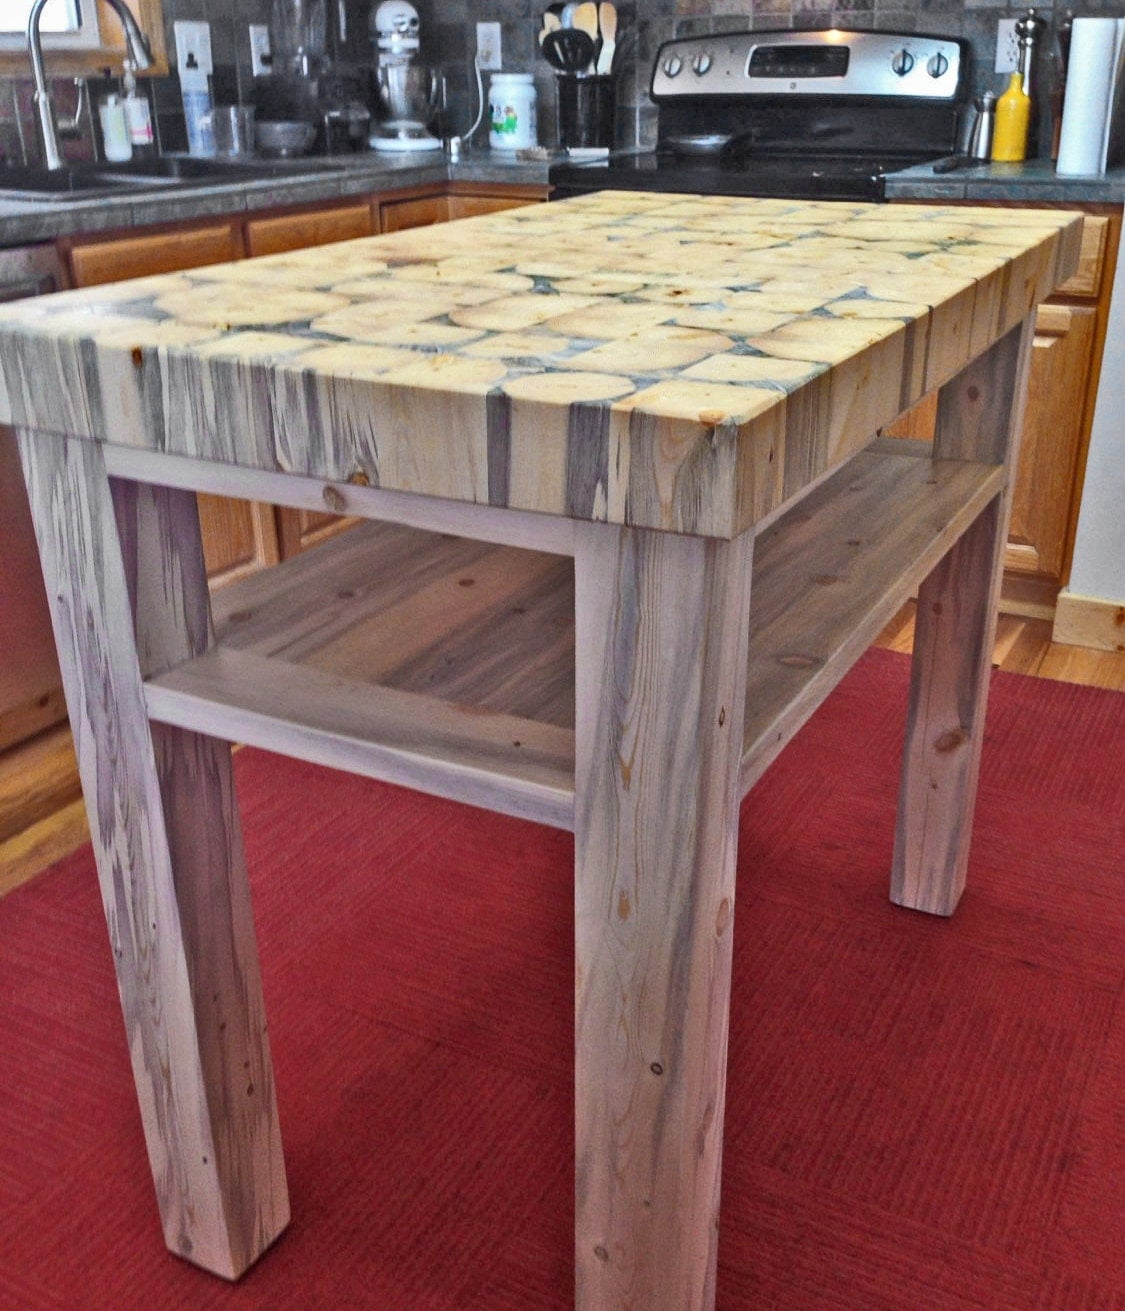 Butcher Block Kitchen Island 3 Thick End Grain Blocks